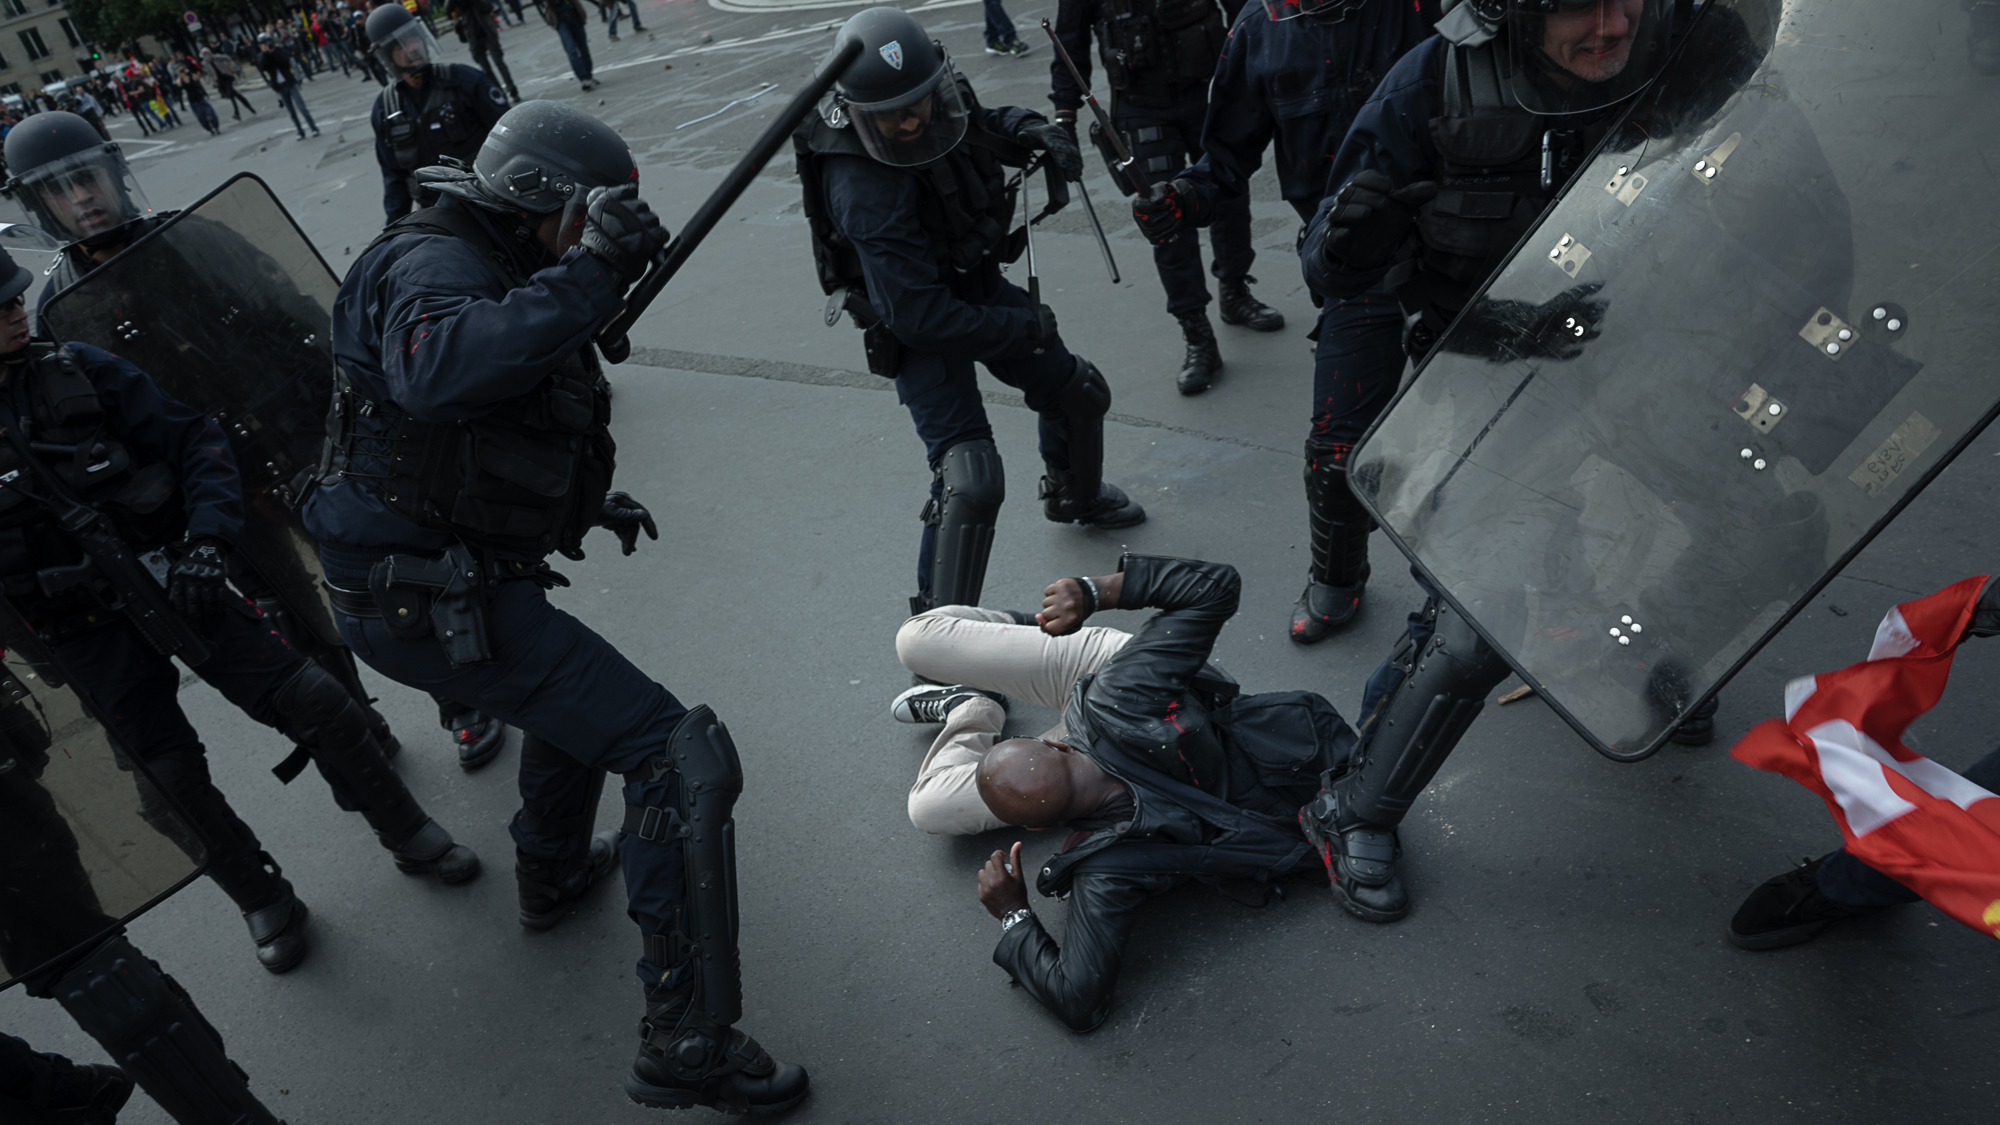 Police violence, this time against an aggressive crowd, is on the rise these days.